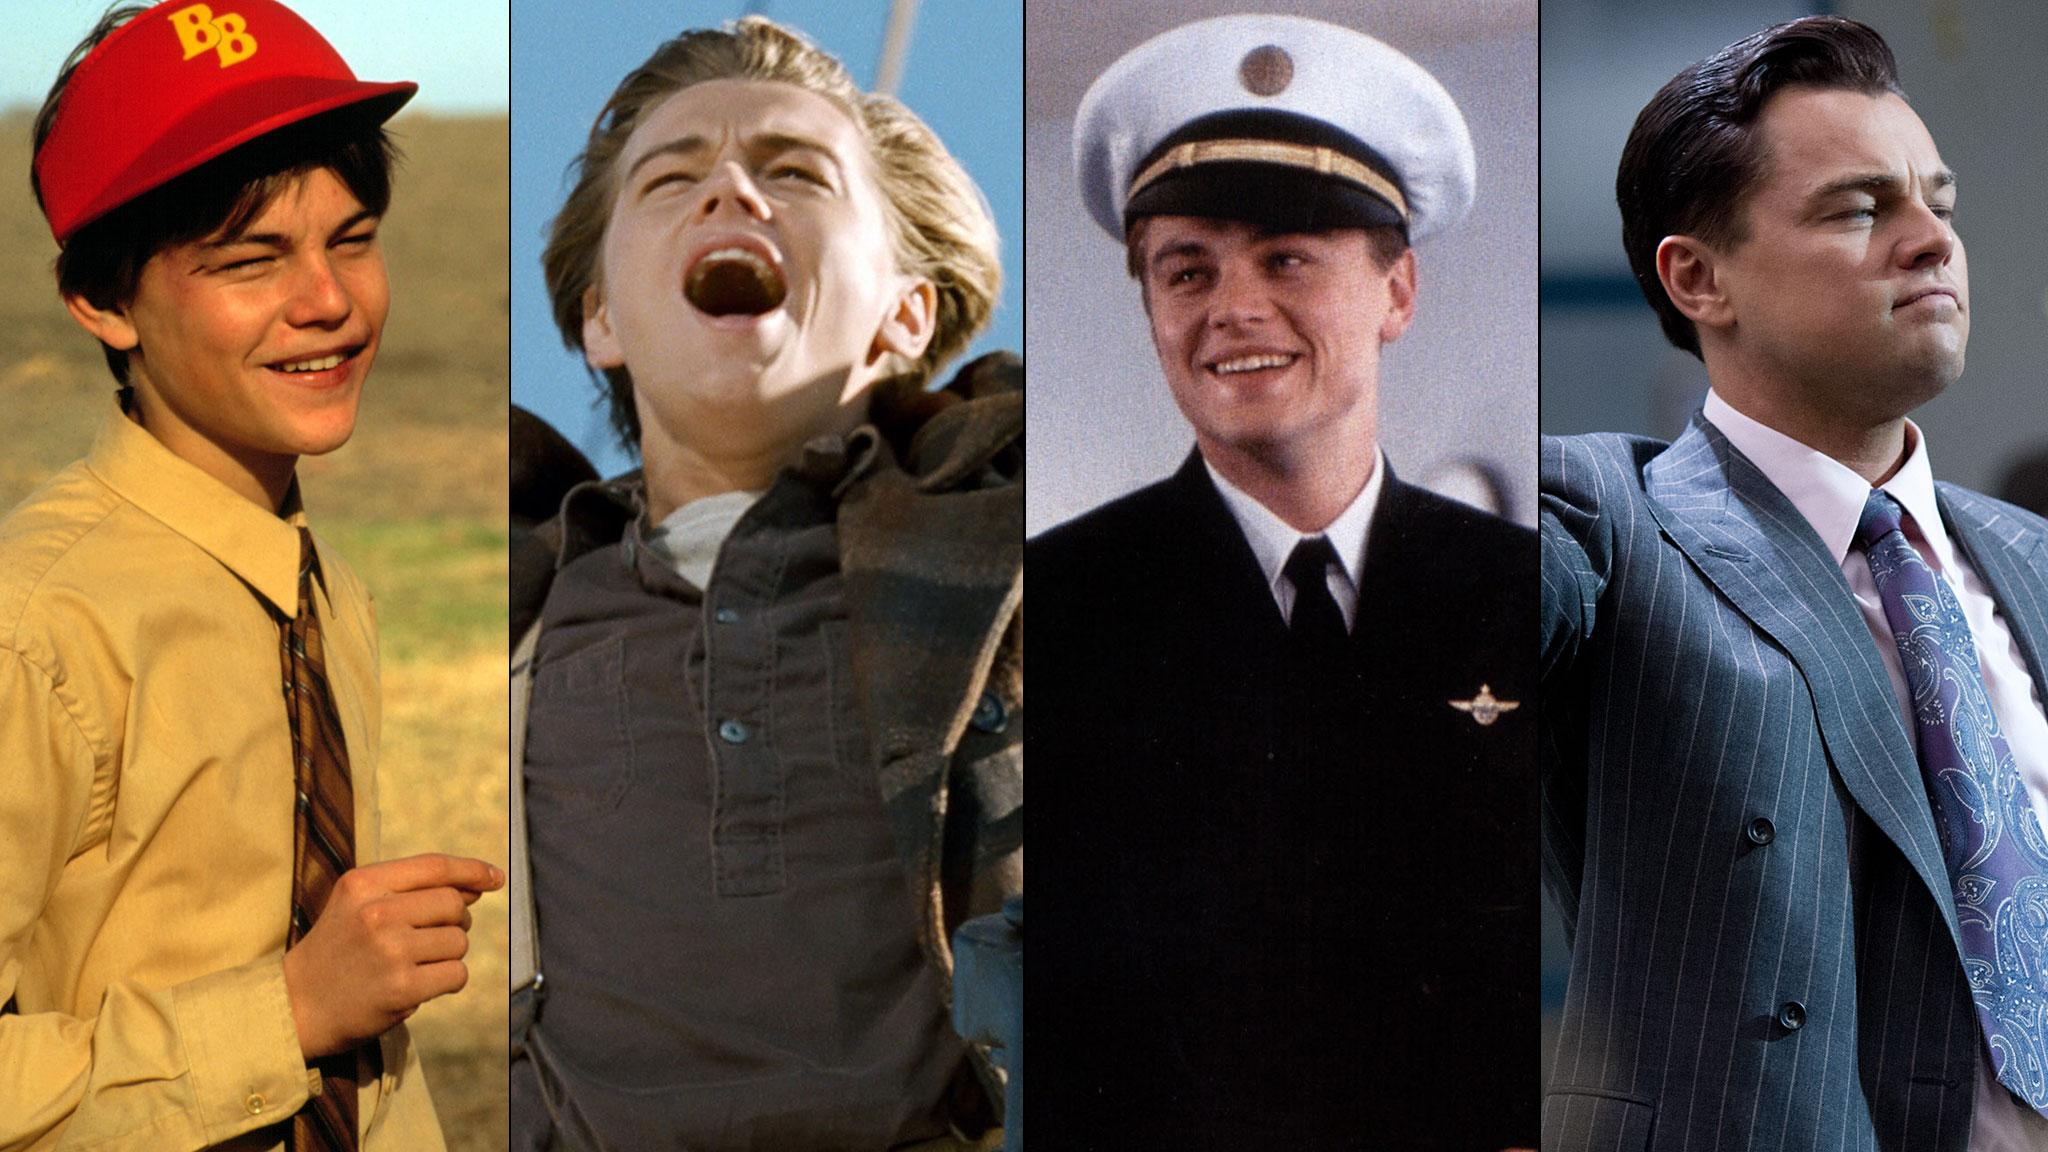 How Leonardo Dicaprio Turned Early Childhood Struggles Into Oscar Success